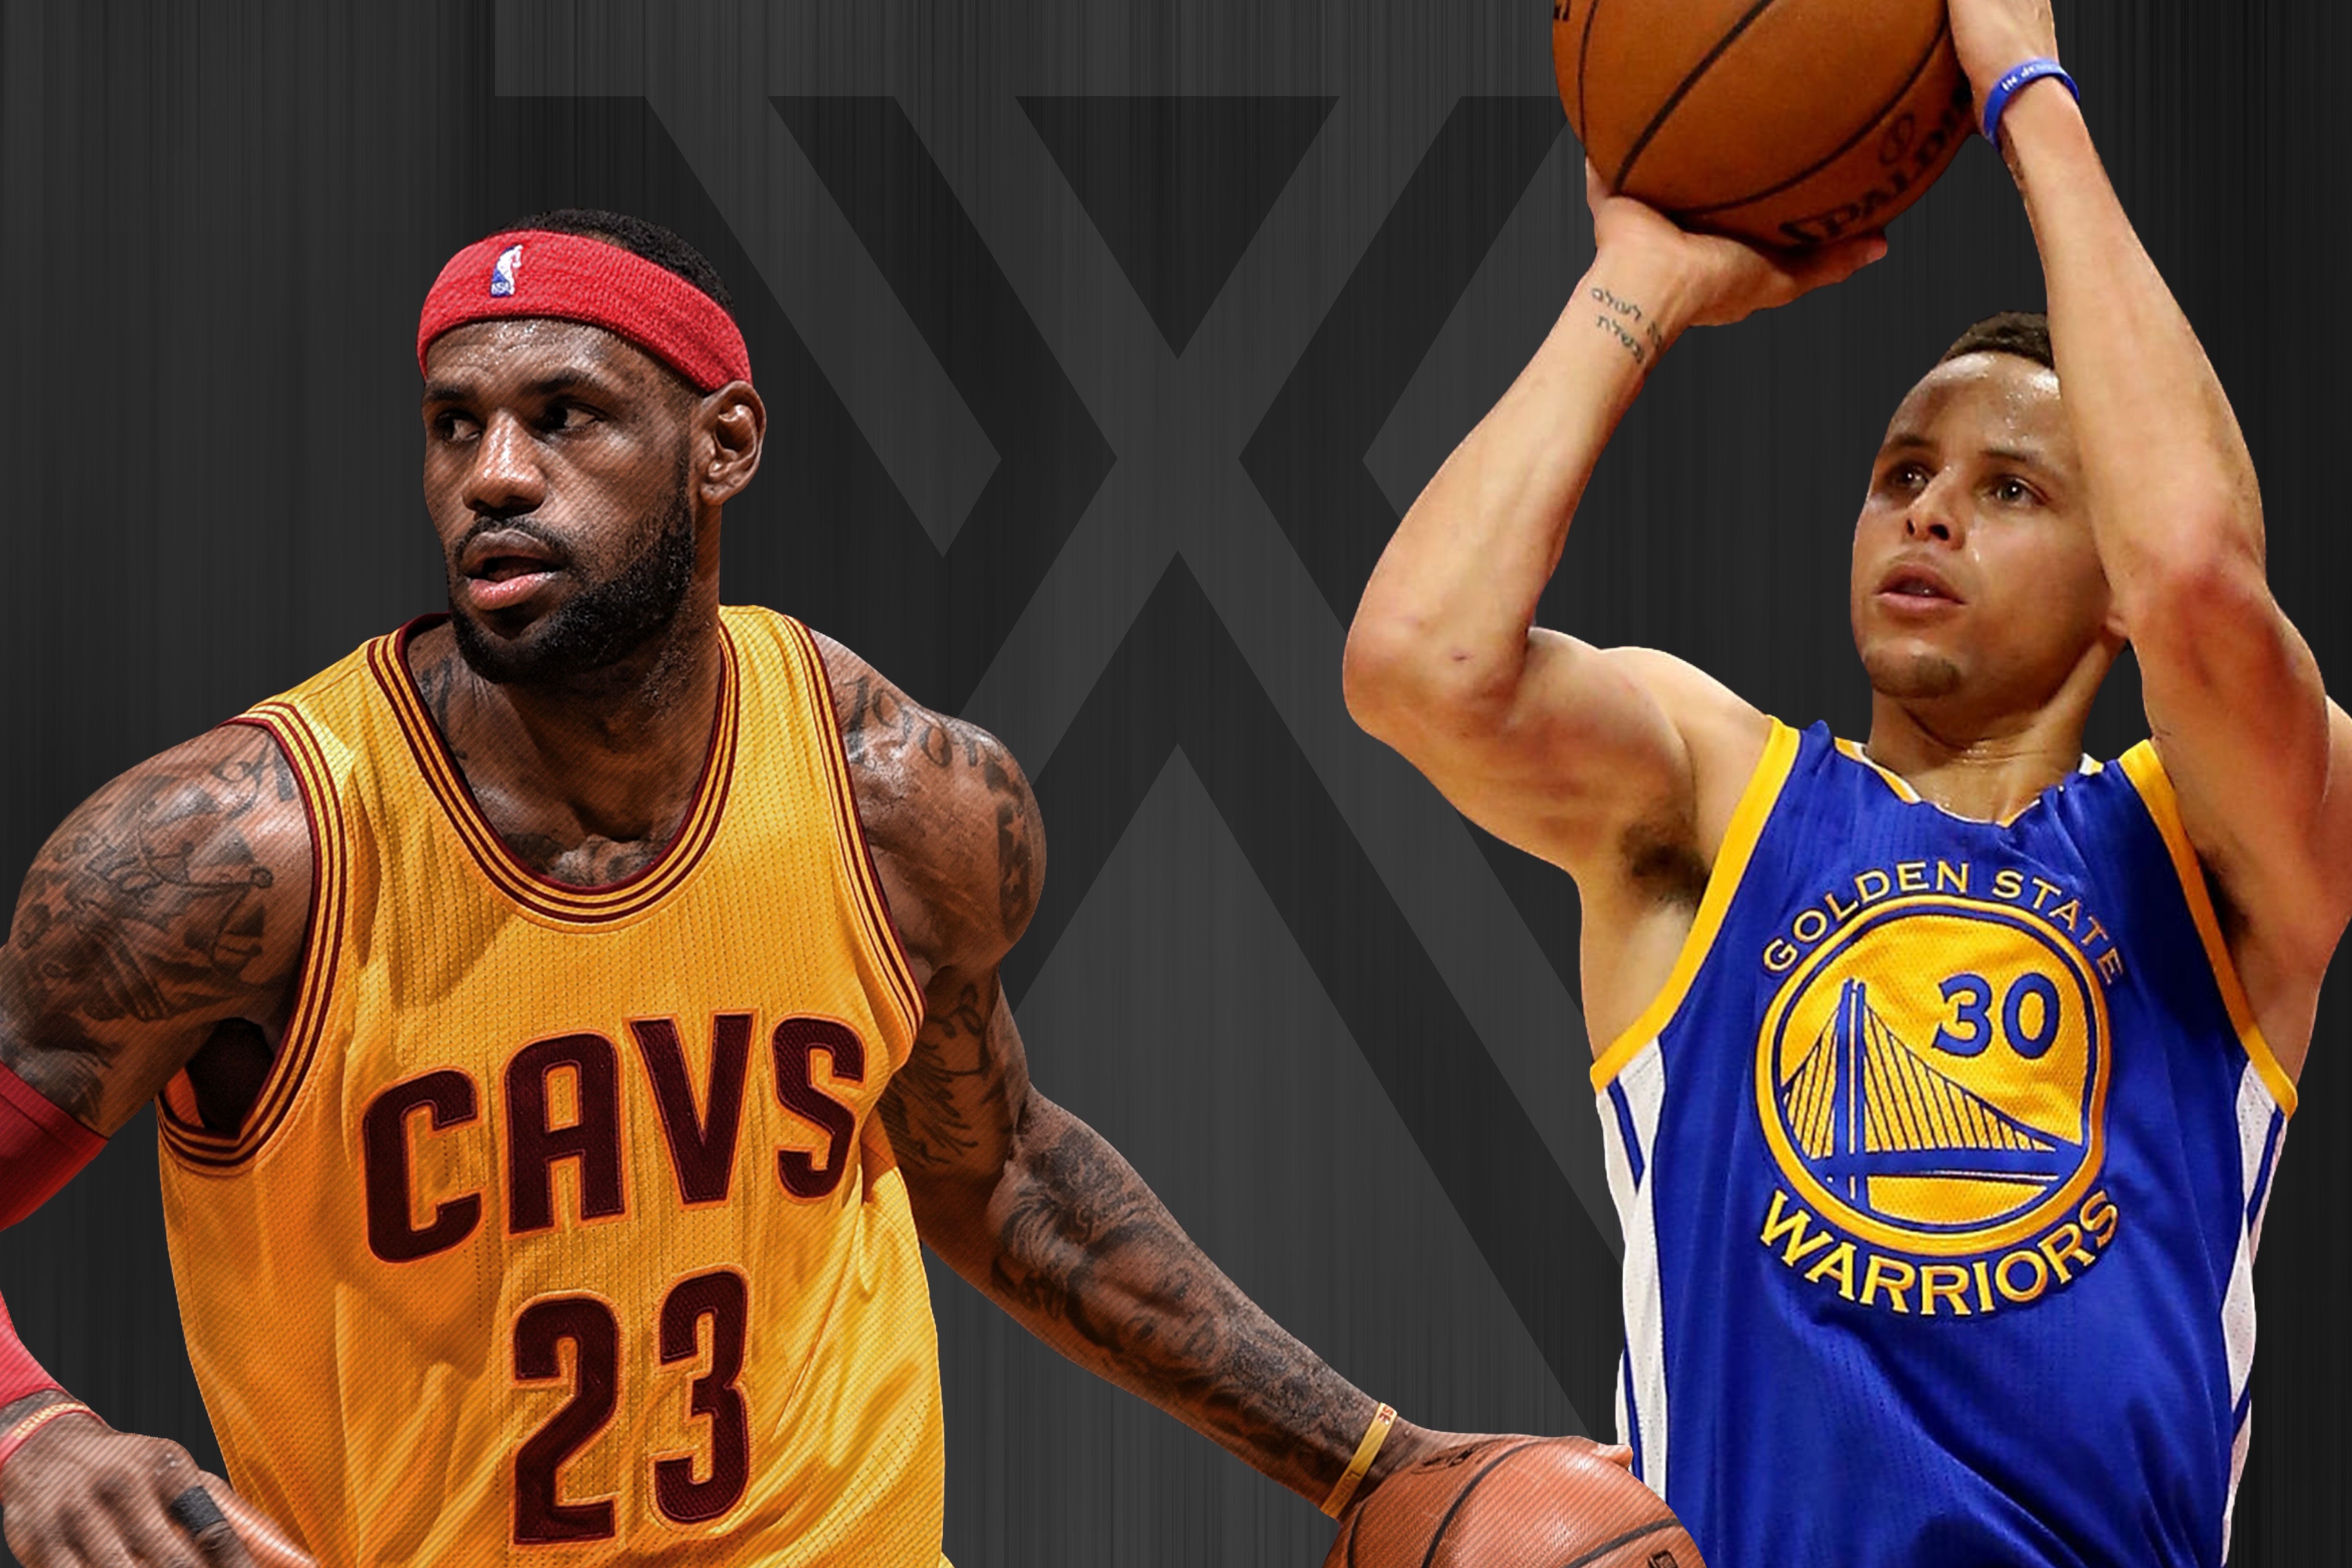 2016 NBA Finals: The Replica Watches of Steph Curry and LeBron James